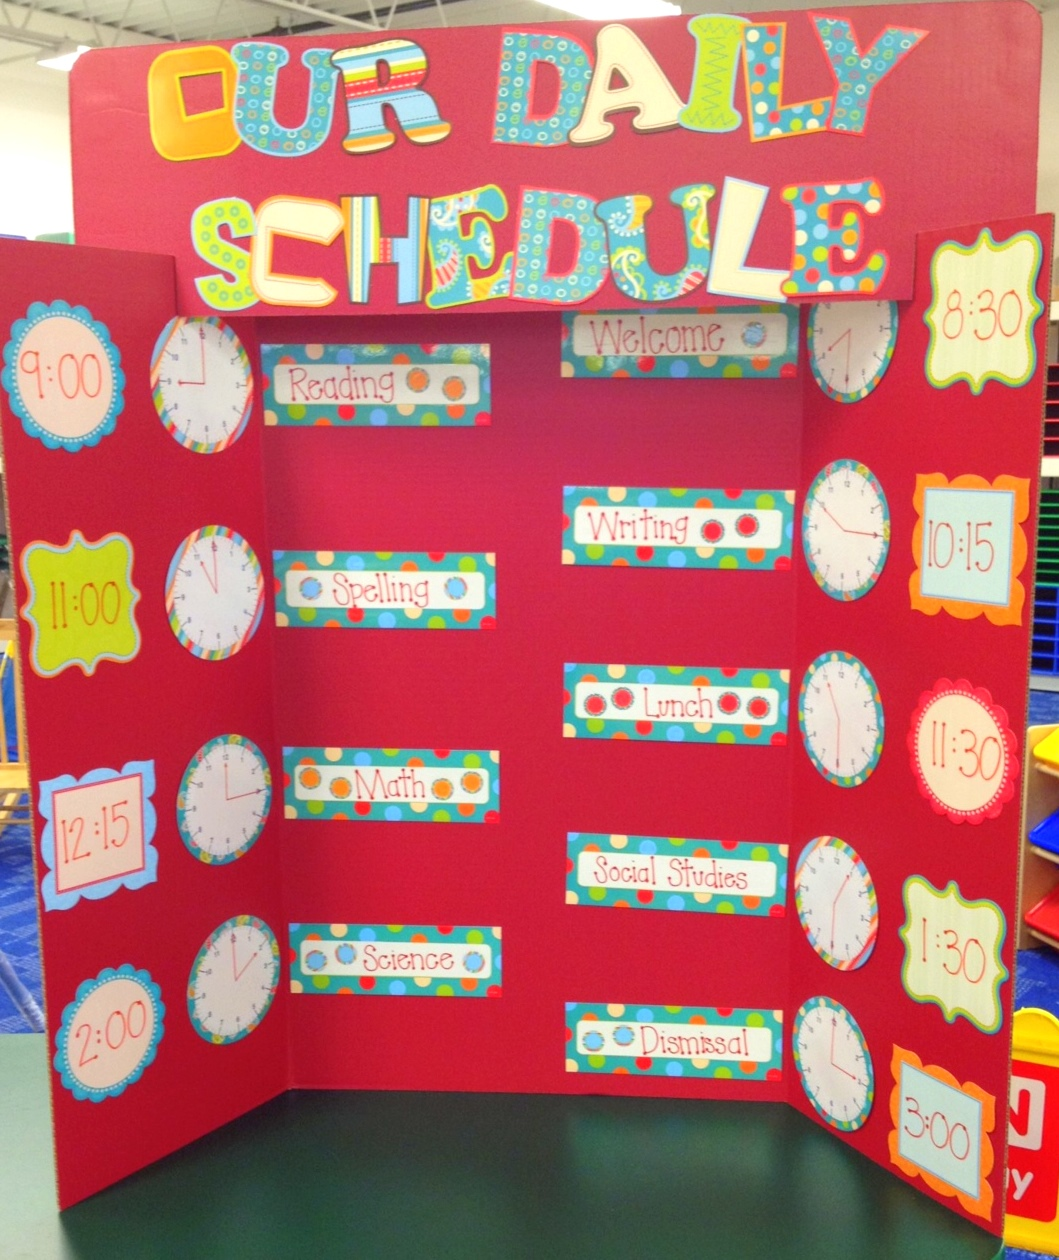 tri fold poster board ideas for color our daily schedule dots on turquoise collection - Tri Fold Display Board Design Ideas